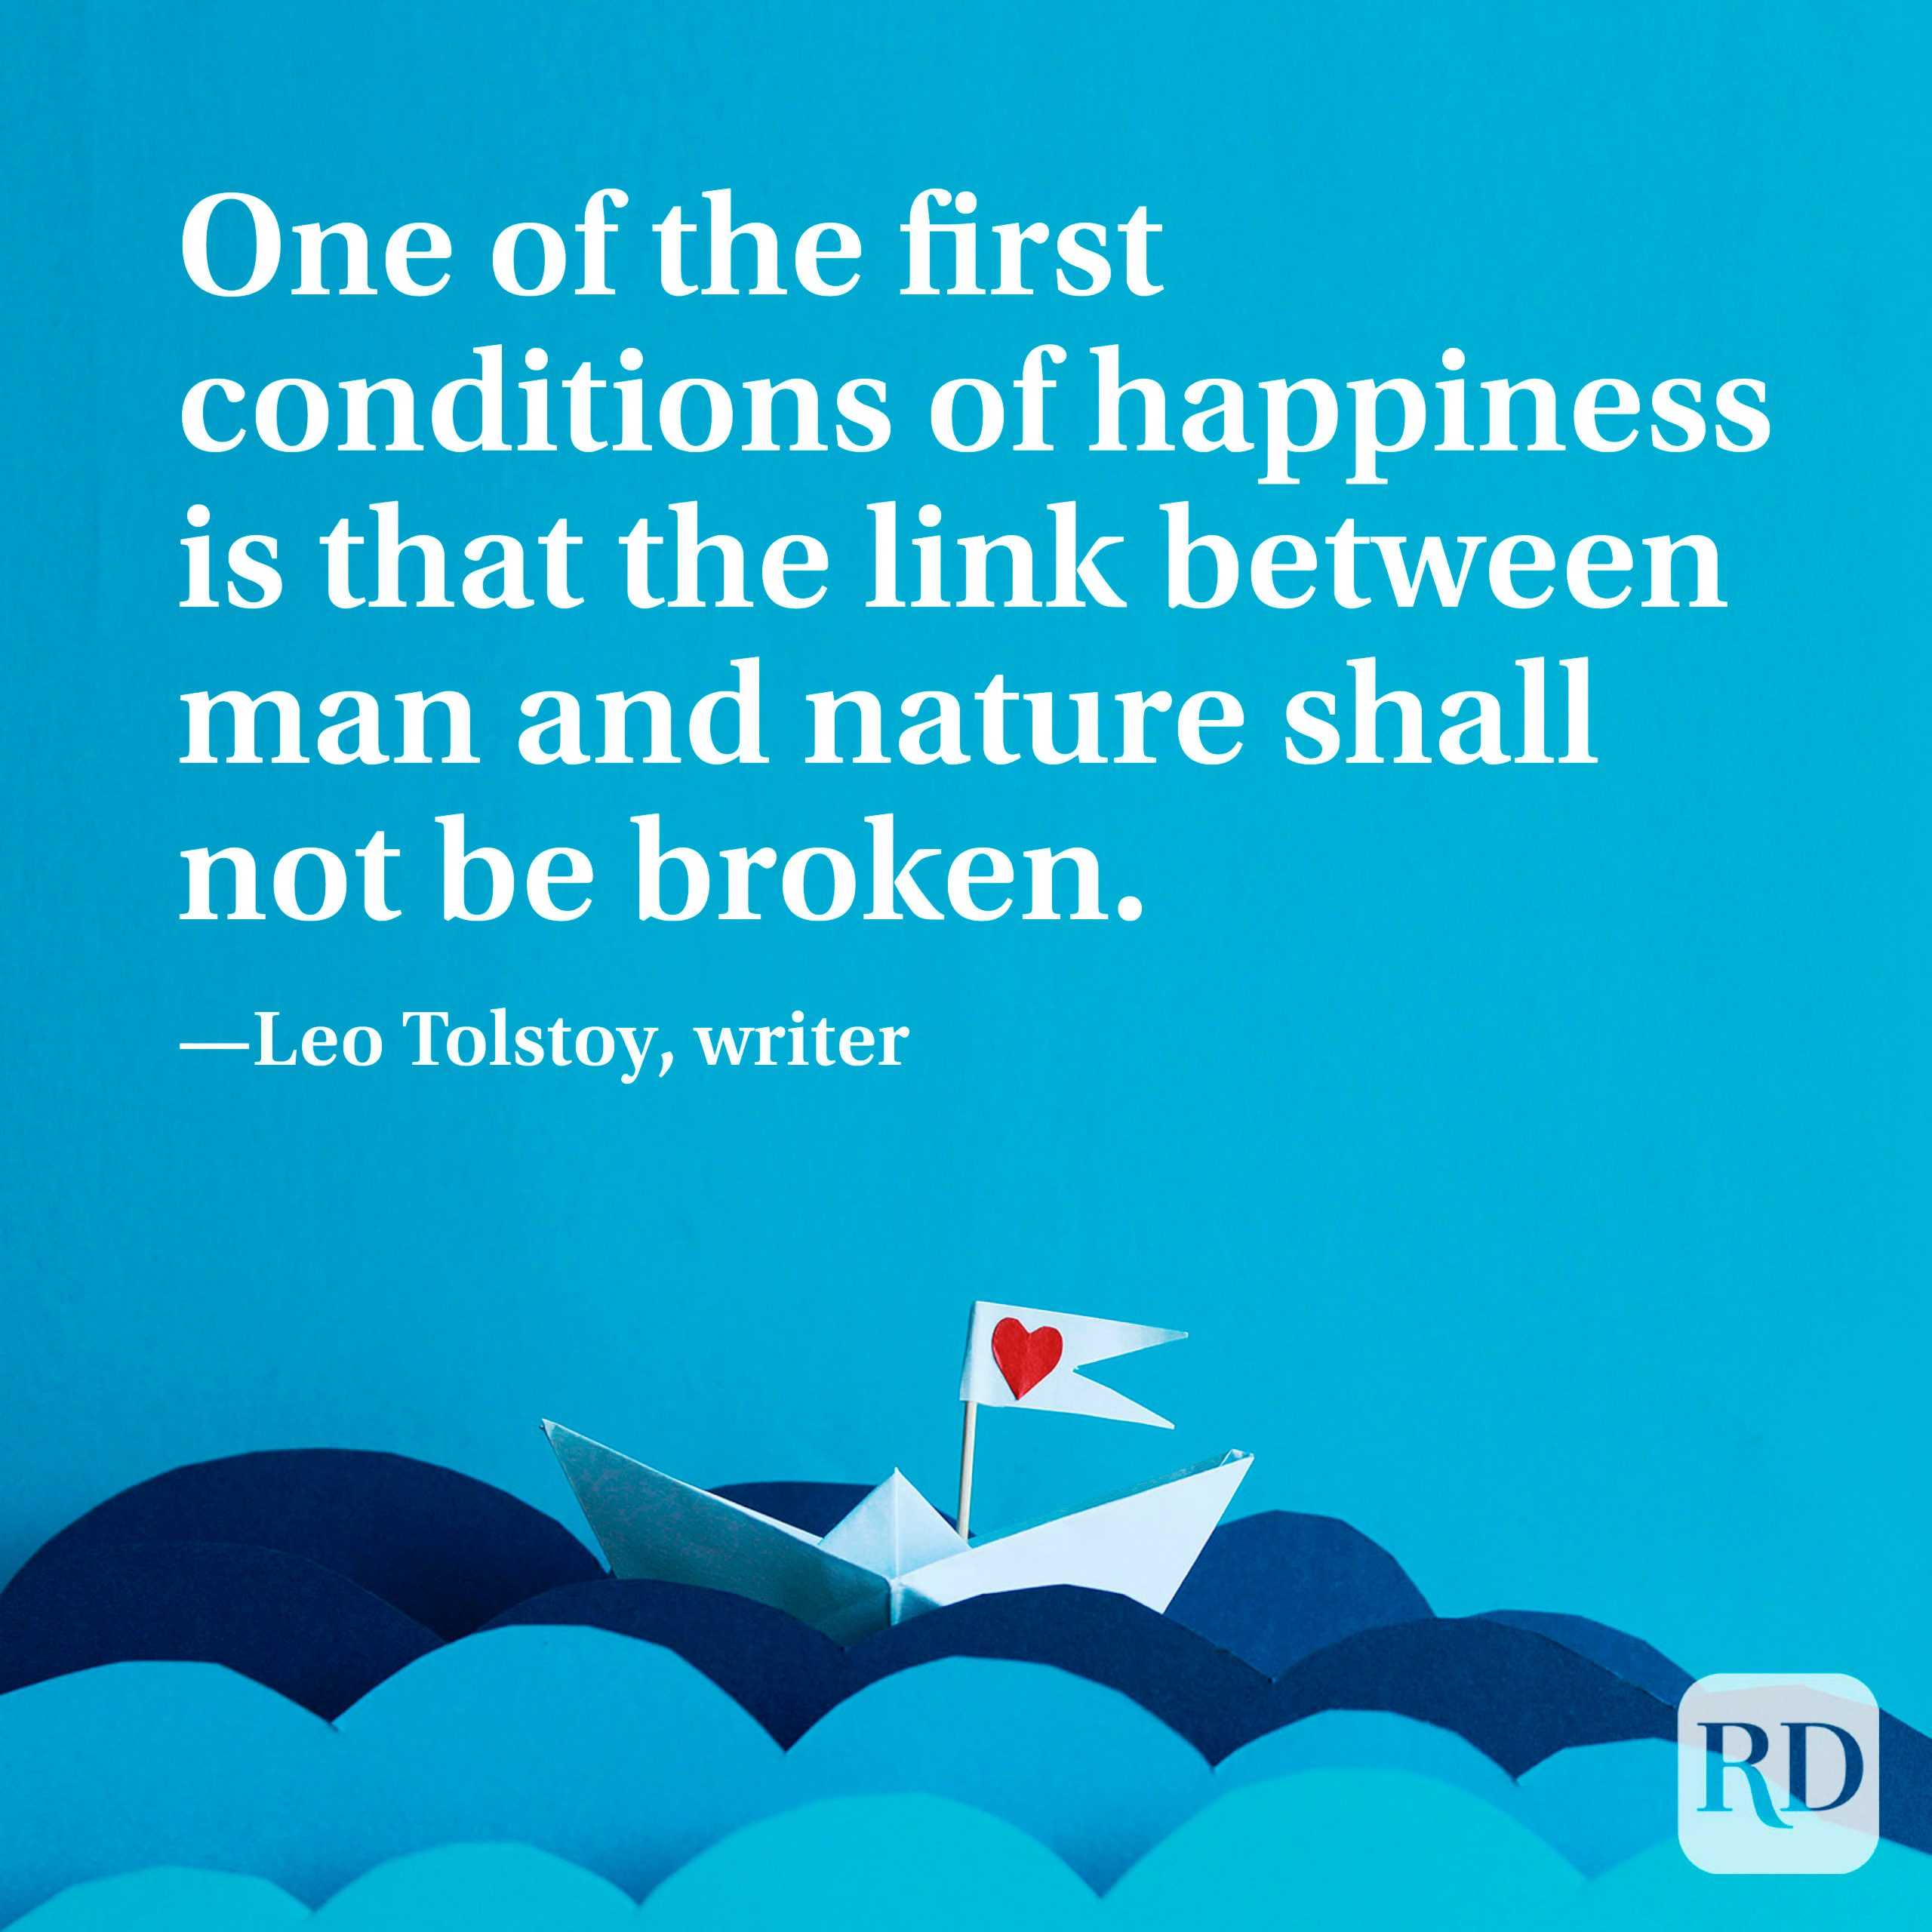 """""""One of the first conditions of happiness is that the link between man and nature shall not be broken."""" —Leo Tolstoy, writer"""